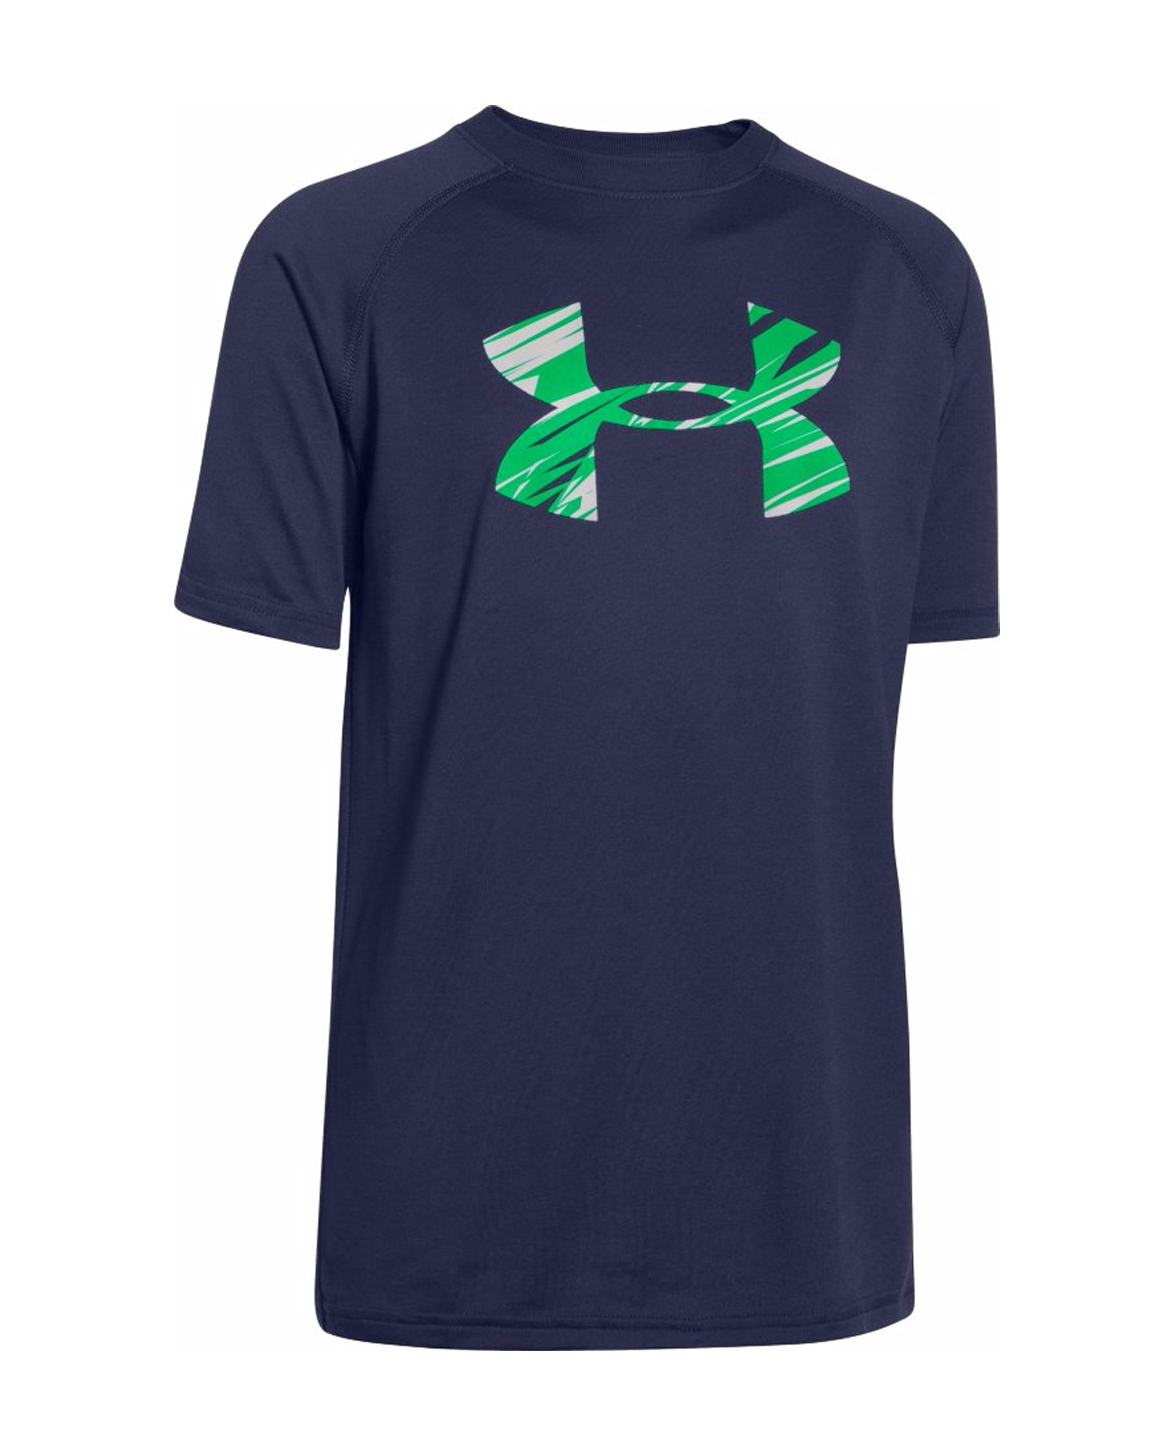 Under armour 1228803 boys ua big logo t shirt tee youth for Under armour swim shirt youth